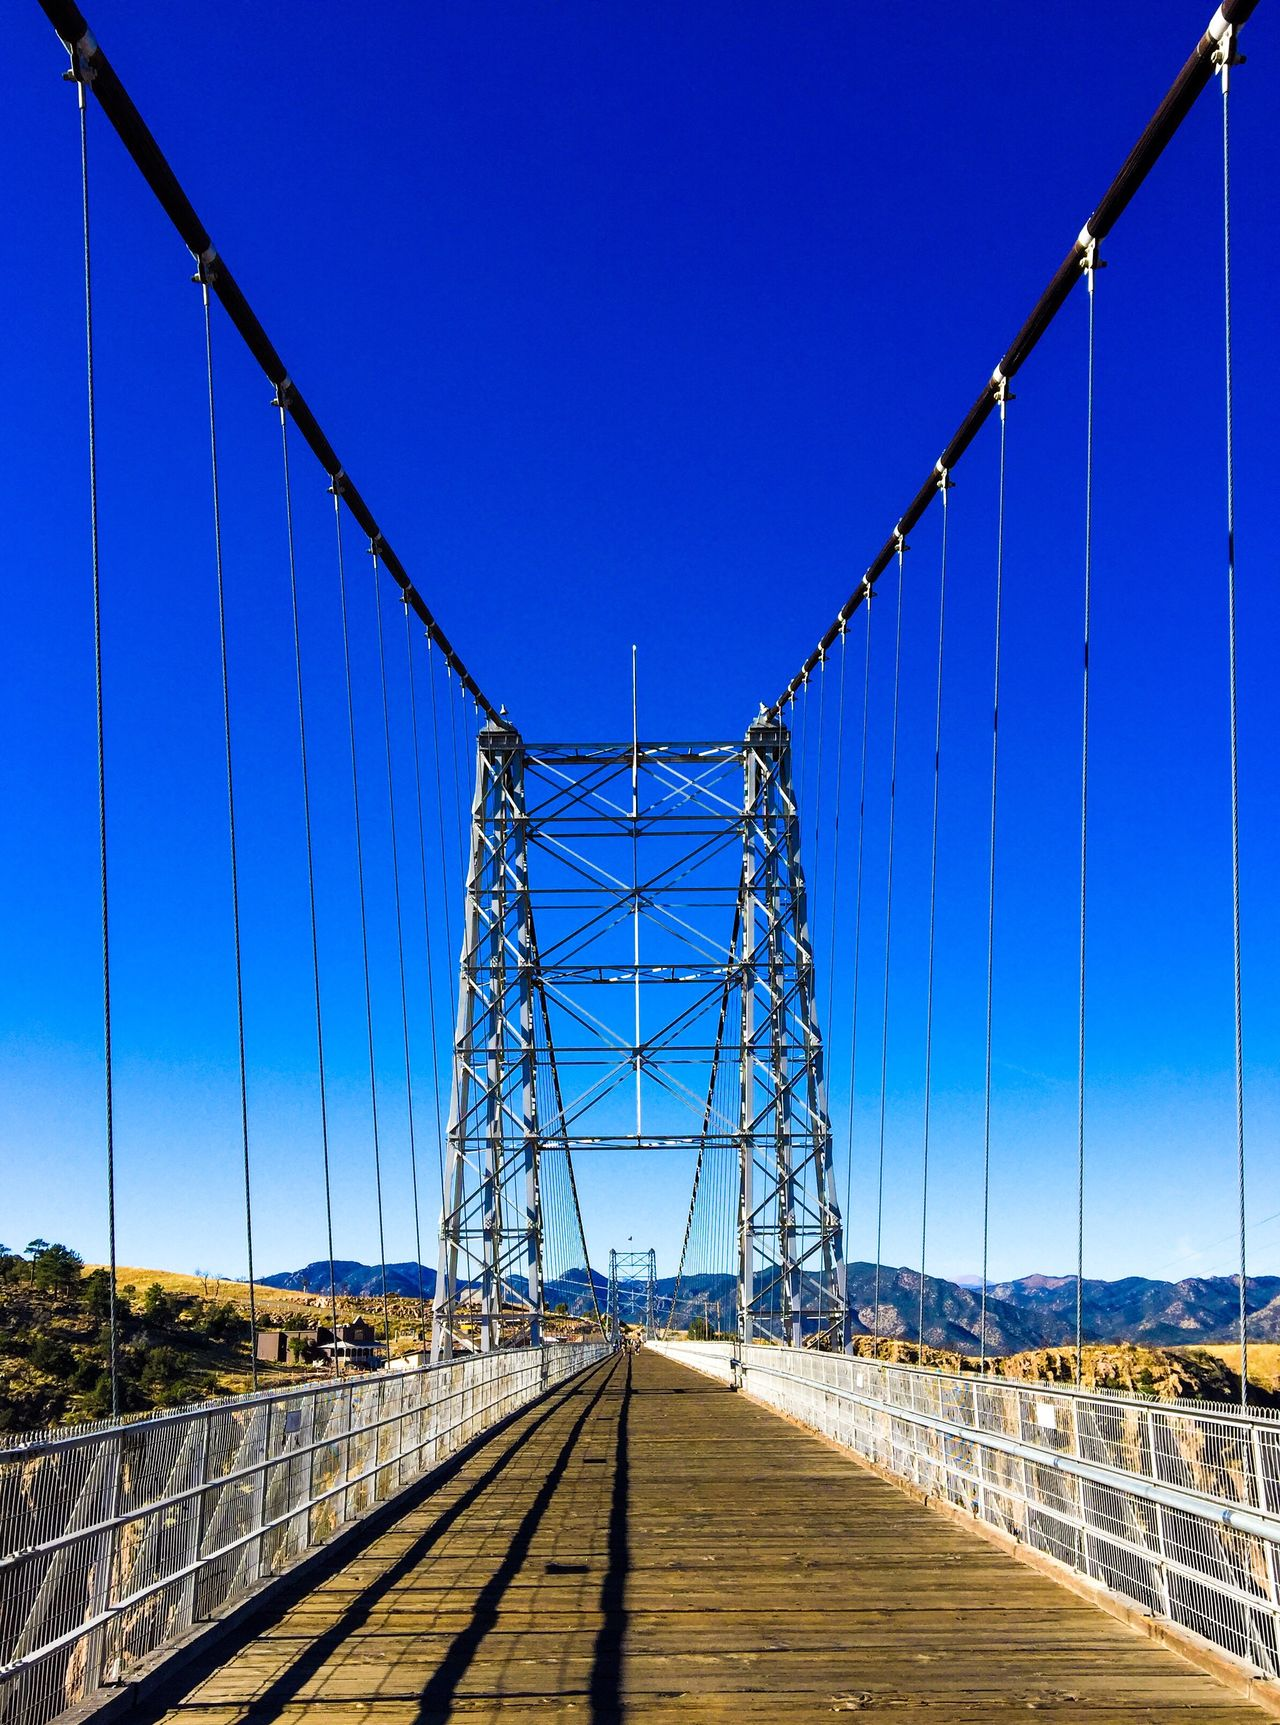 The Royal Gorge Bridge. Total length is 1,260 feet. It's 18 feet wide and 955 feet above the gorge floor. Check This Out Taking Photos Travel Photography Photography Architecture_collection Bridge Colorado Attraction Pedestrian Bridge Visit Colorado